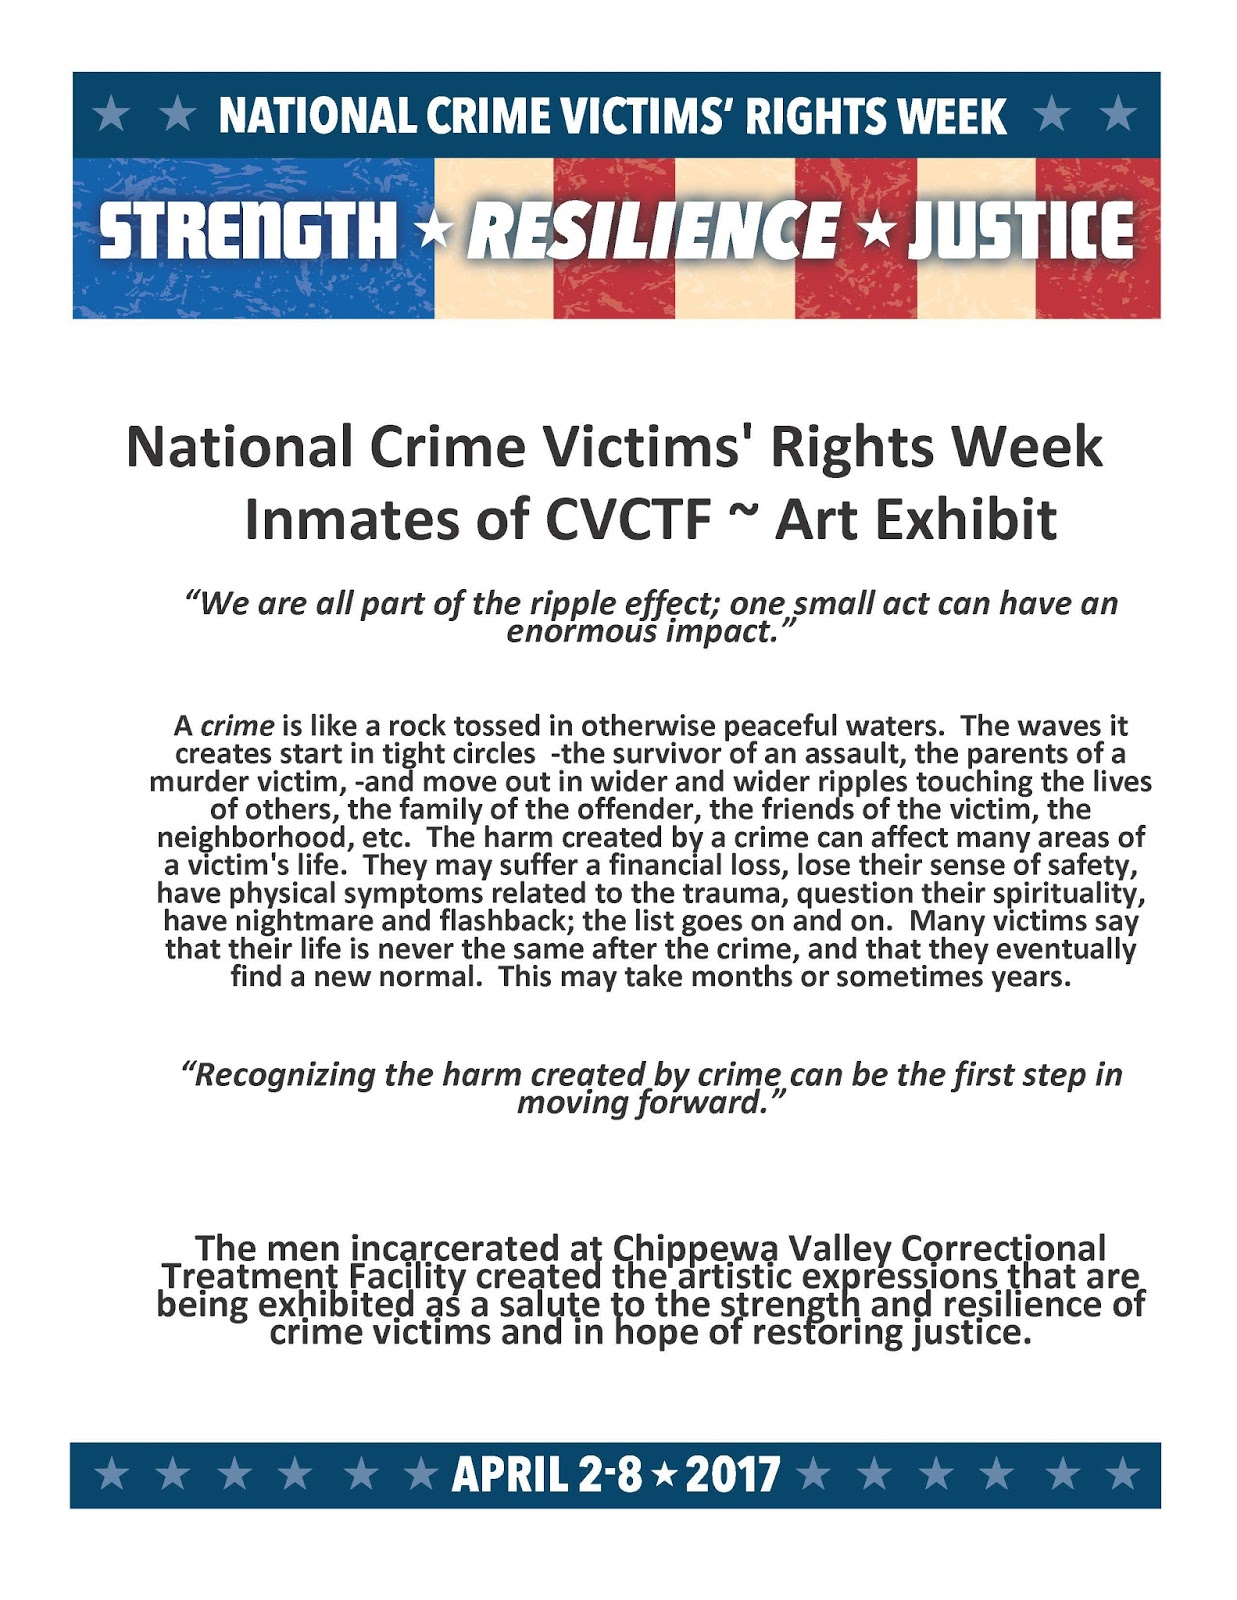 uw stout library news national crime victims rights week art exhibit